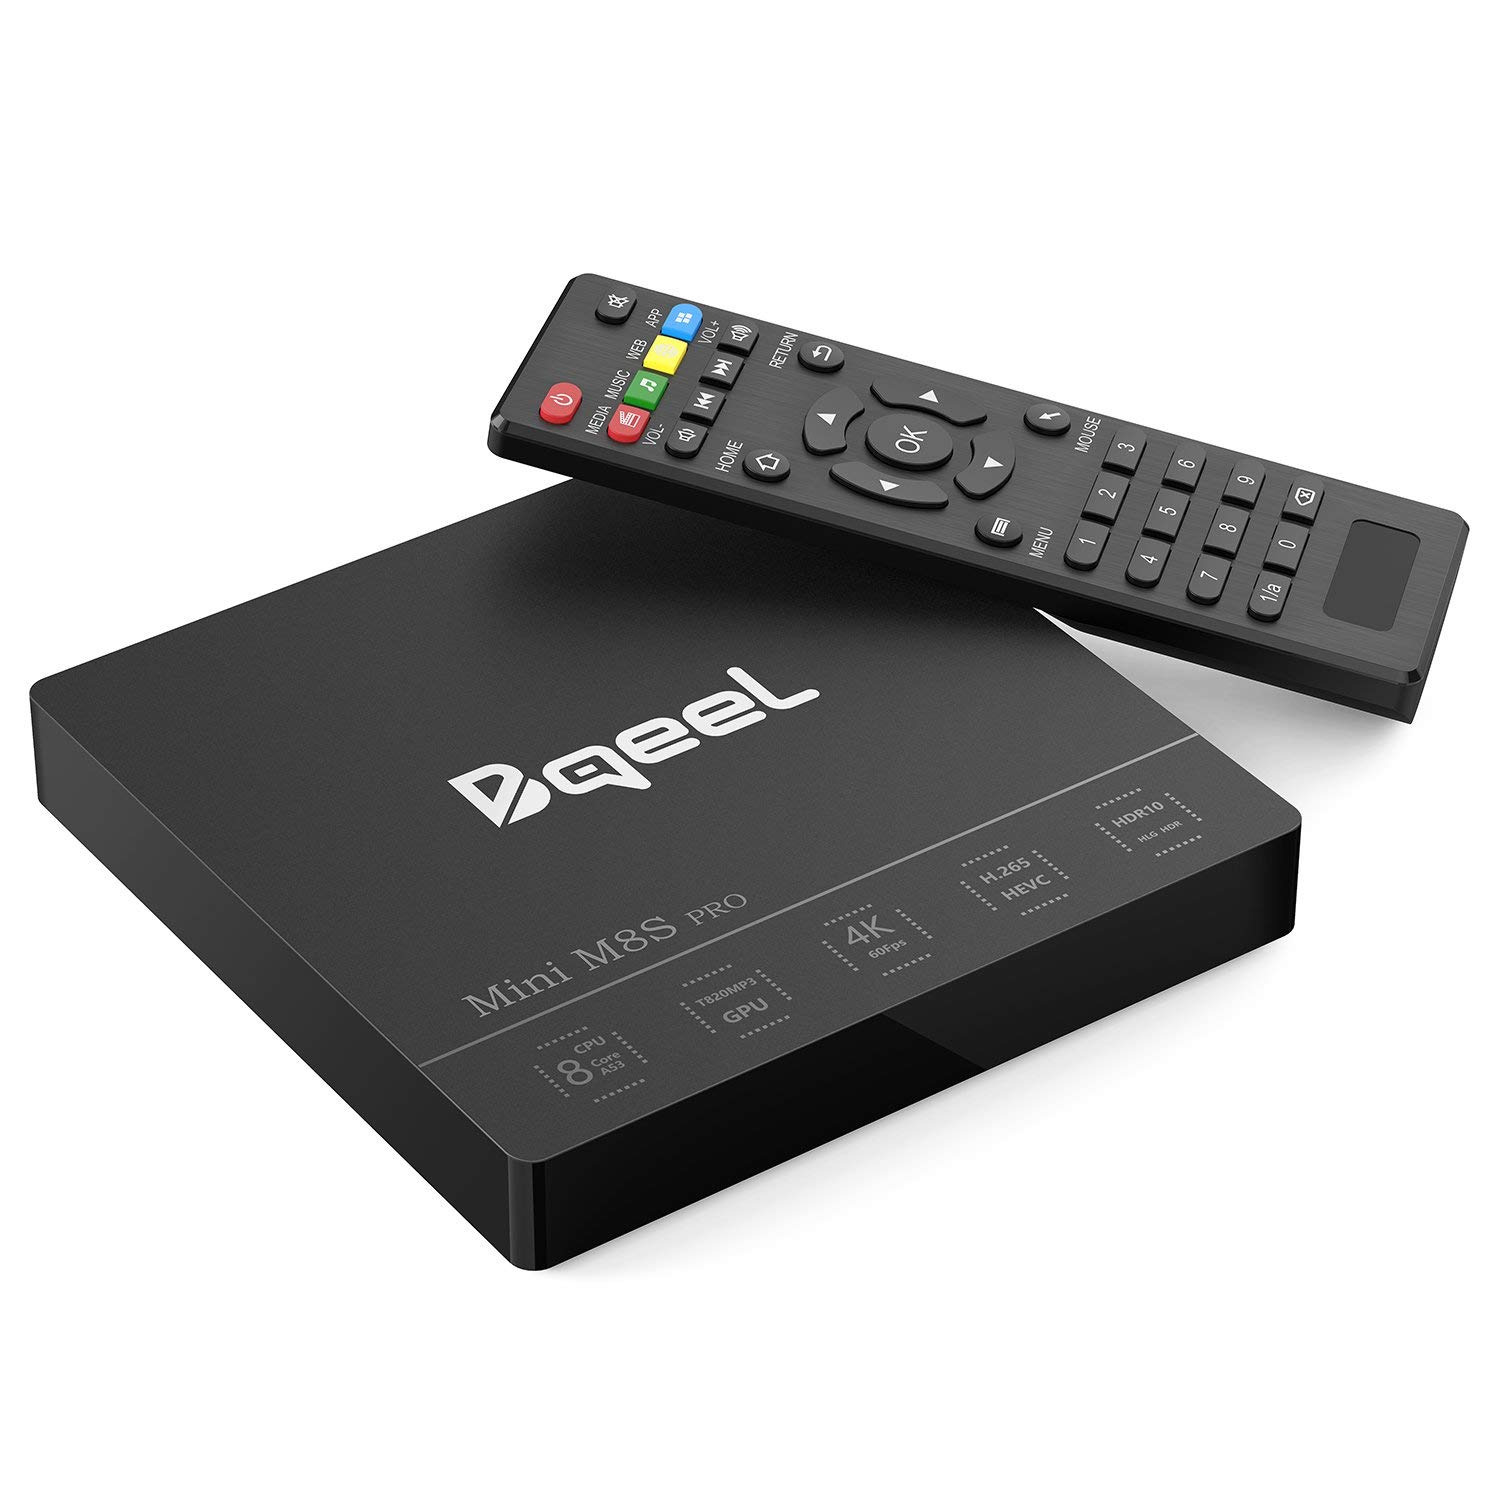 BQEEL M8S PRO Android 7.1 TV BOX 3GB RAM & 32GB ROM